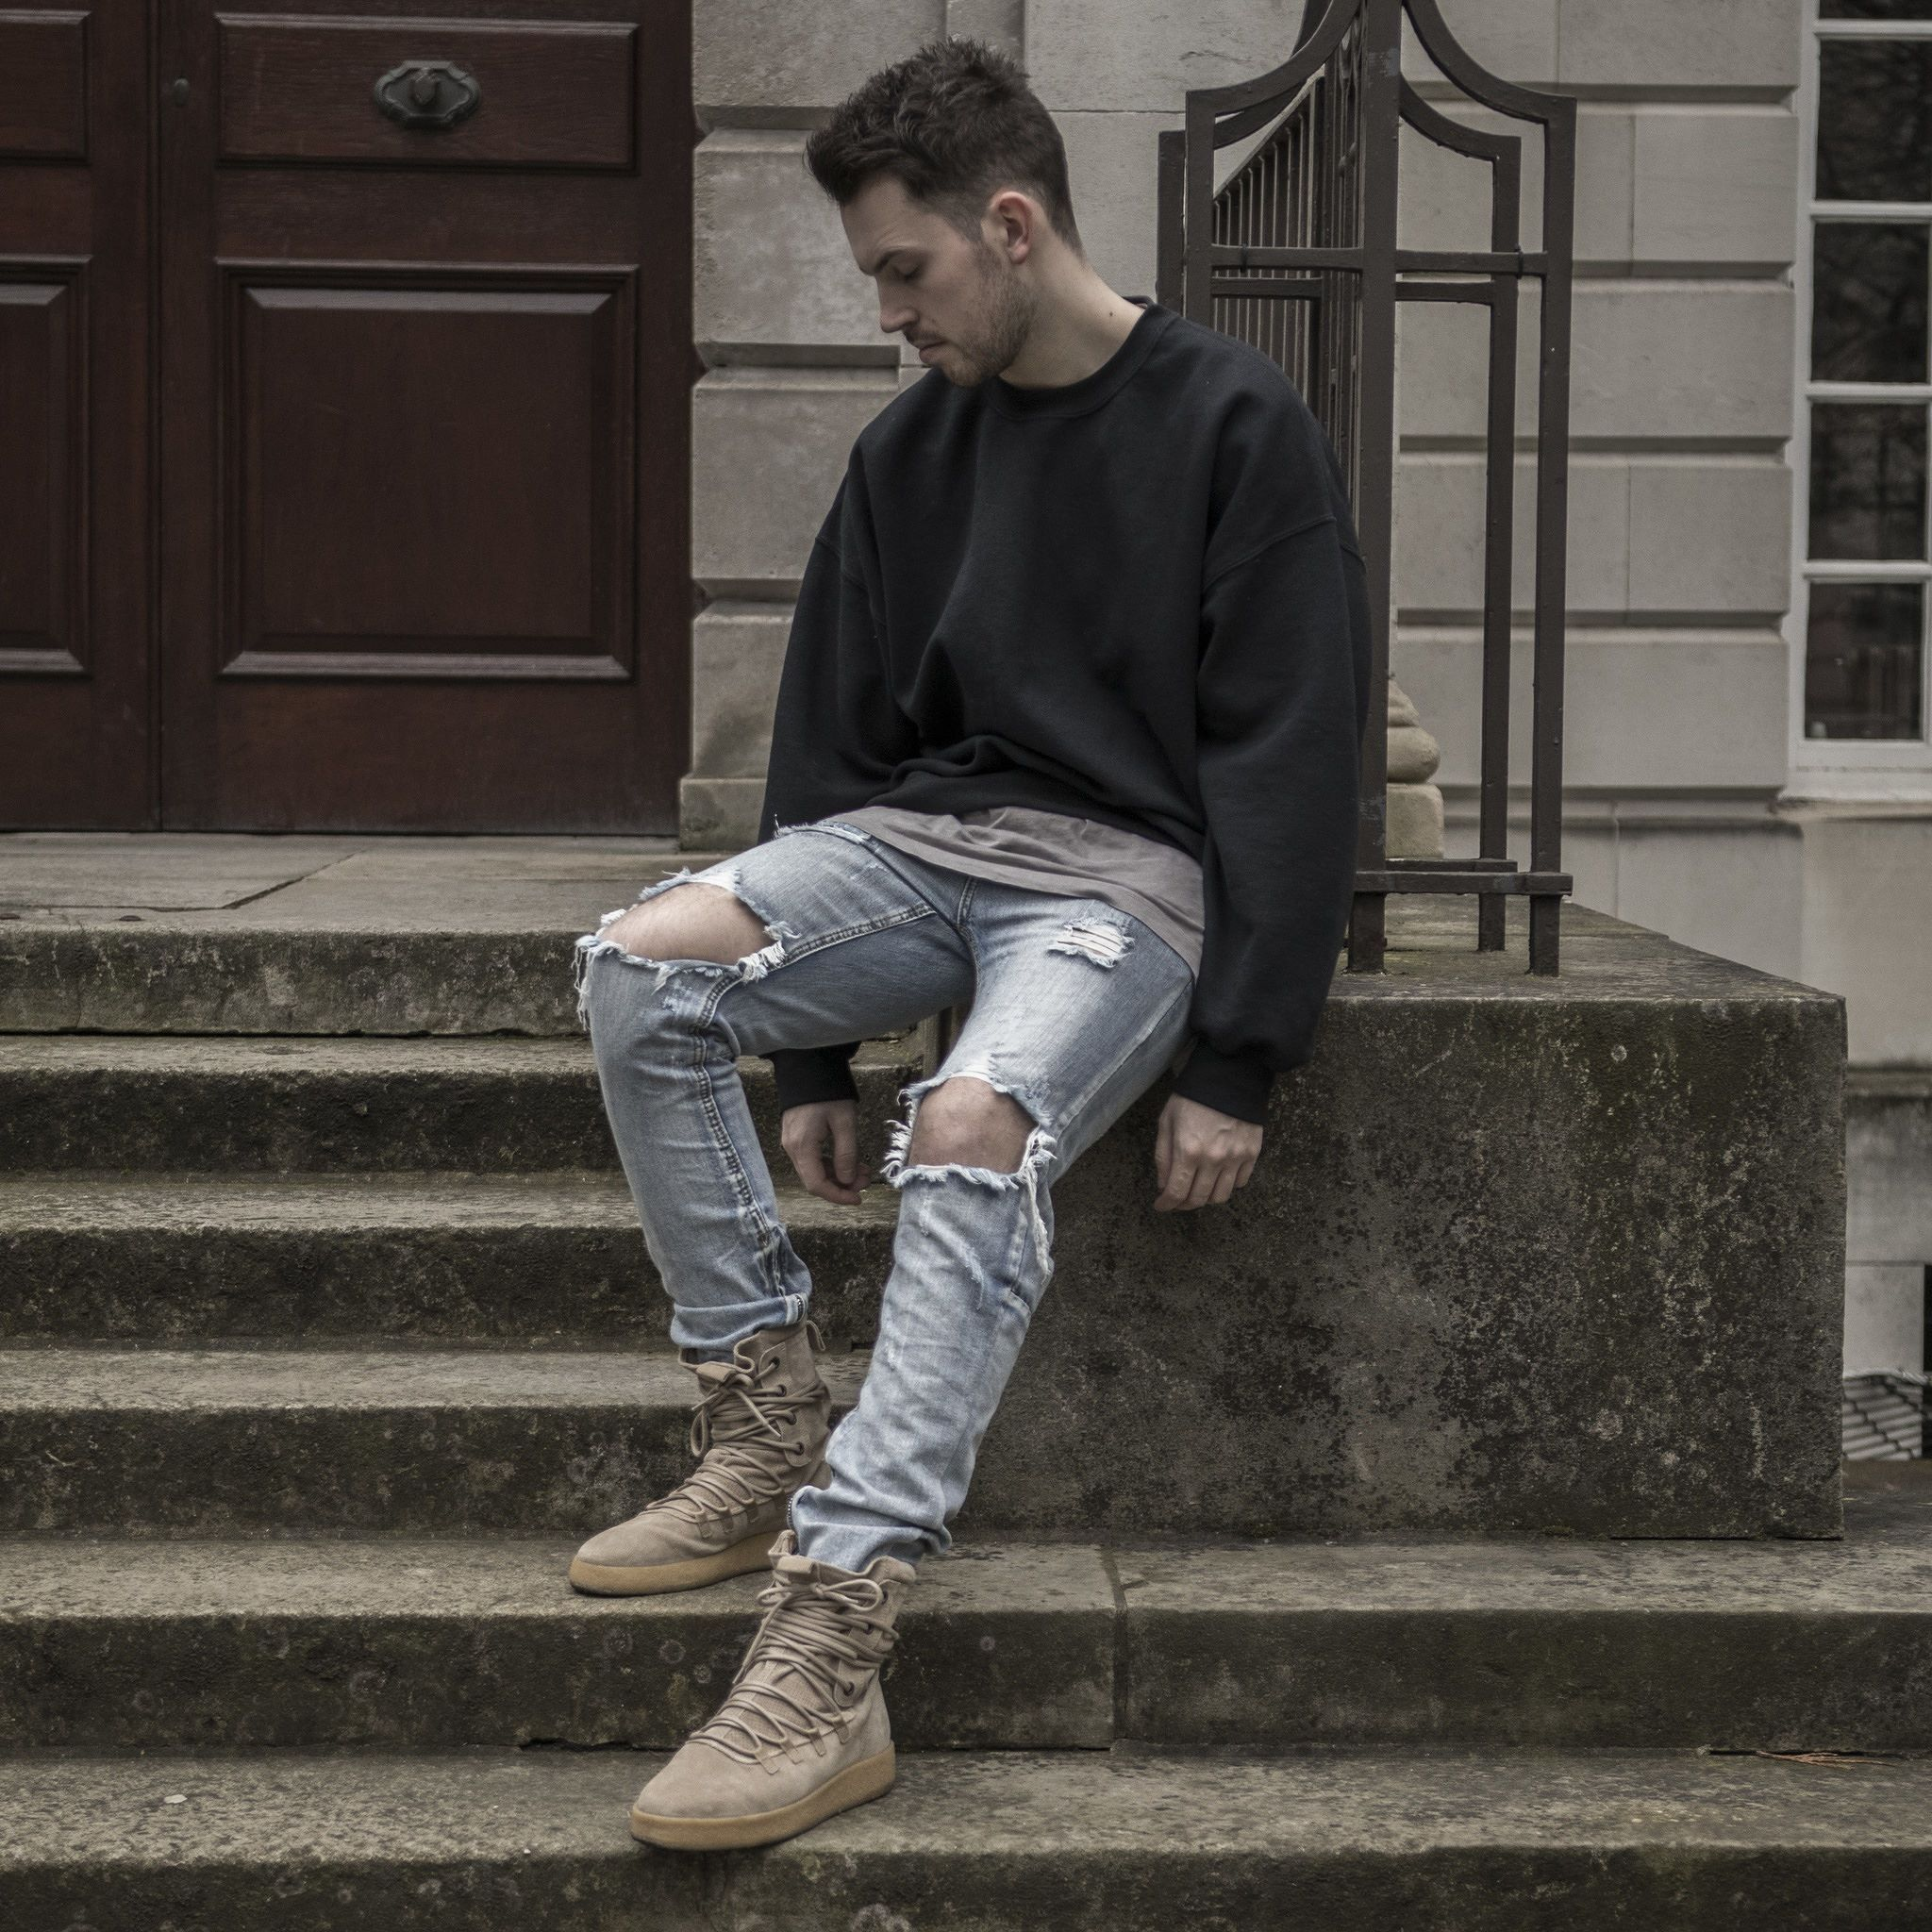 94f7b203dc2 Ankle Zip Jeans Restock! After high demand and selling out we have  restocked all sizes for you! Cop now!